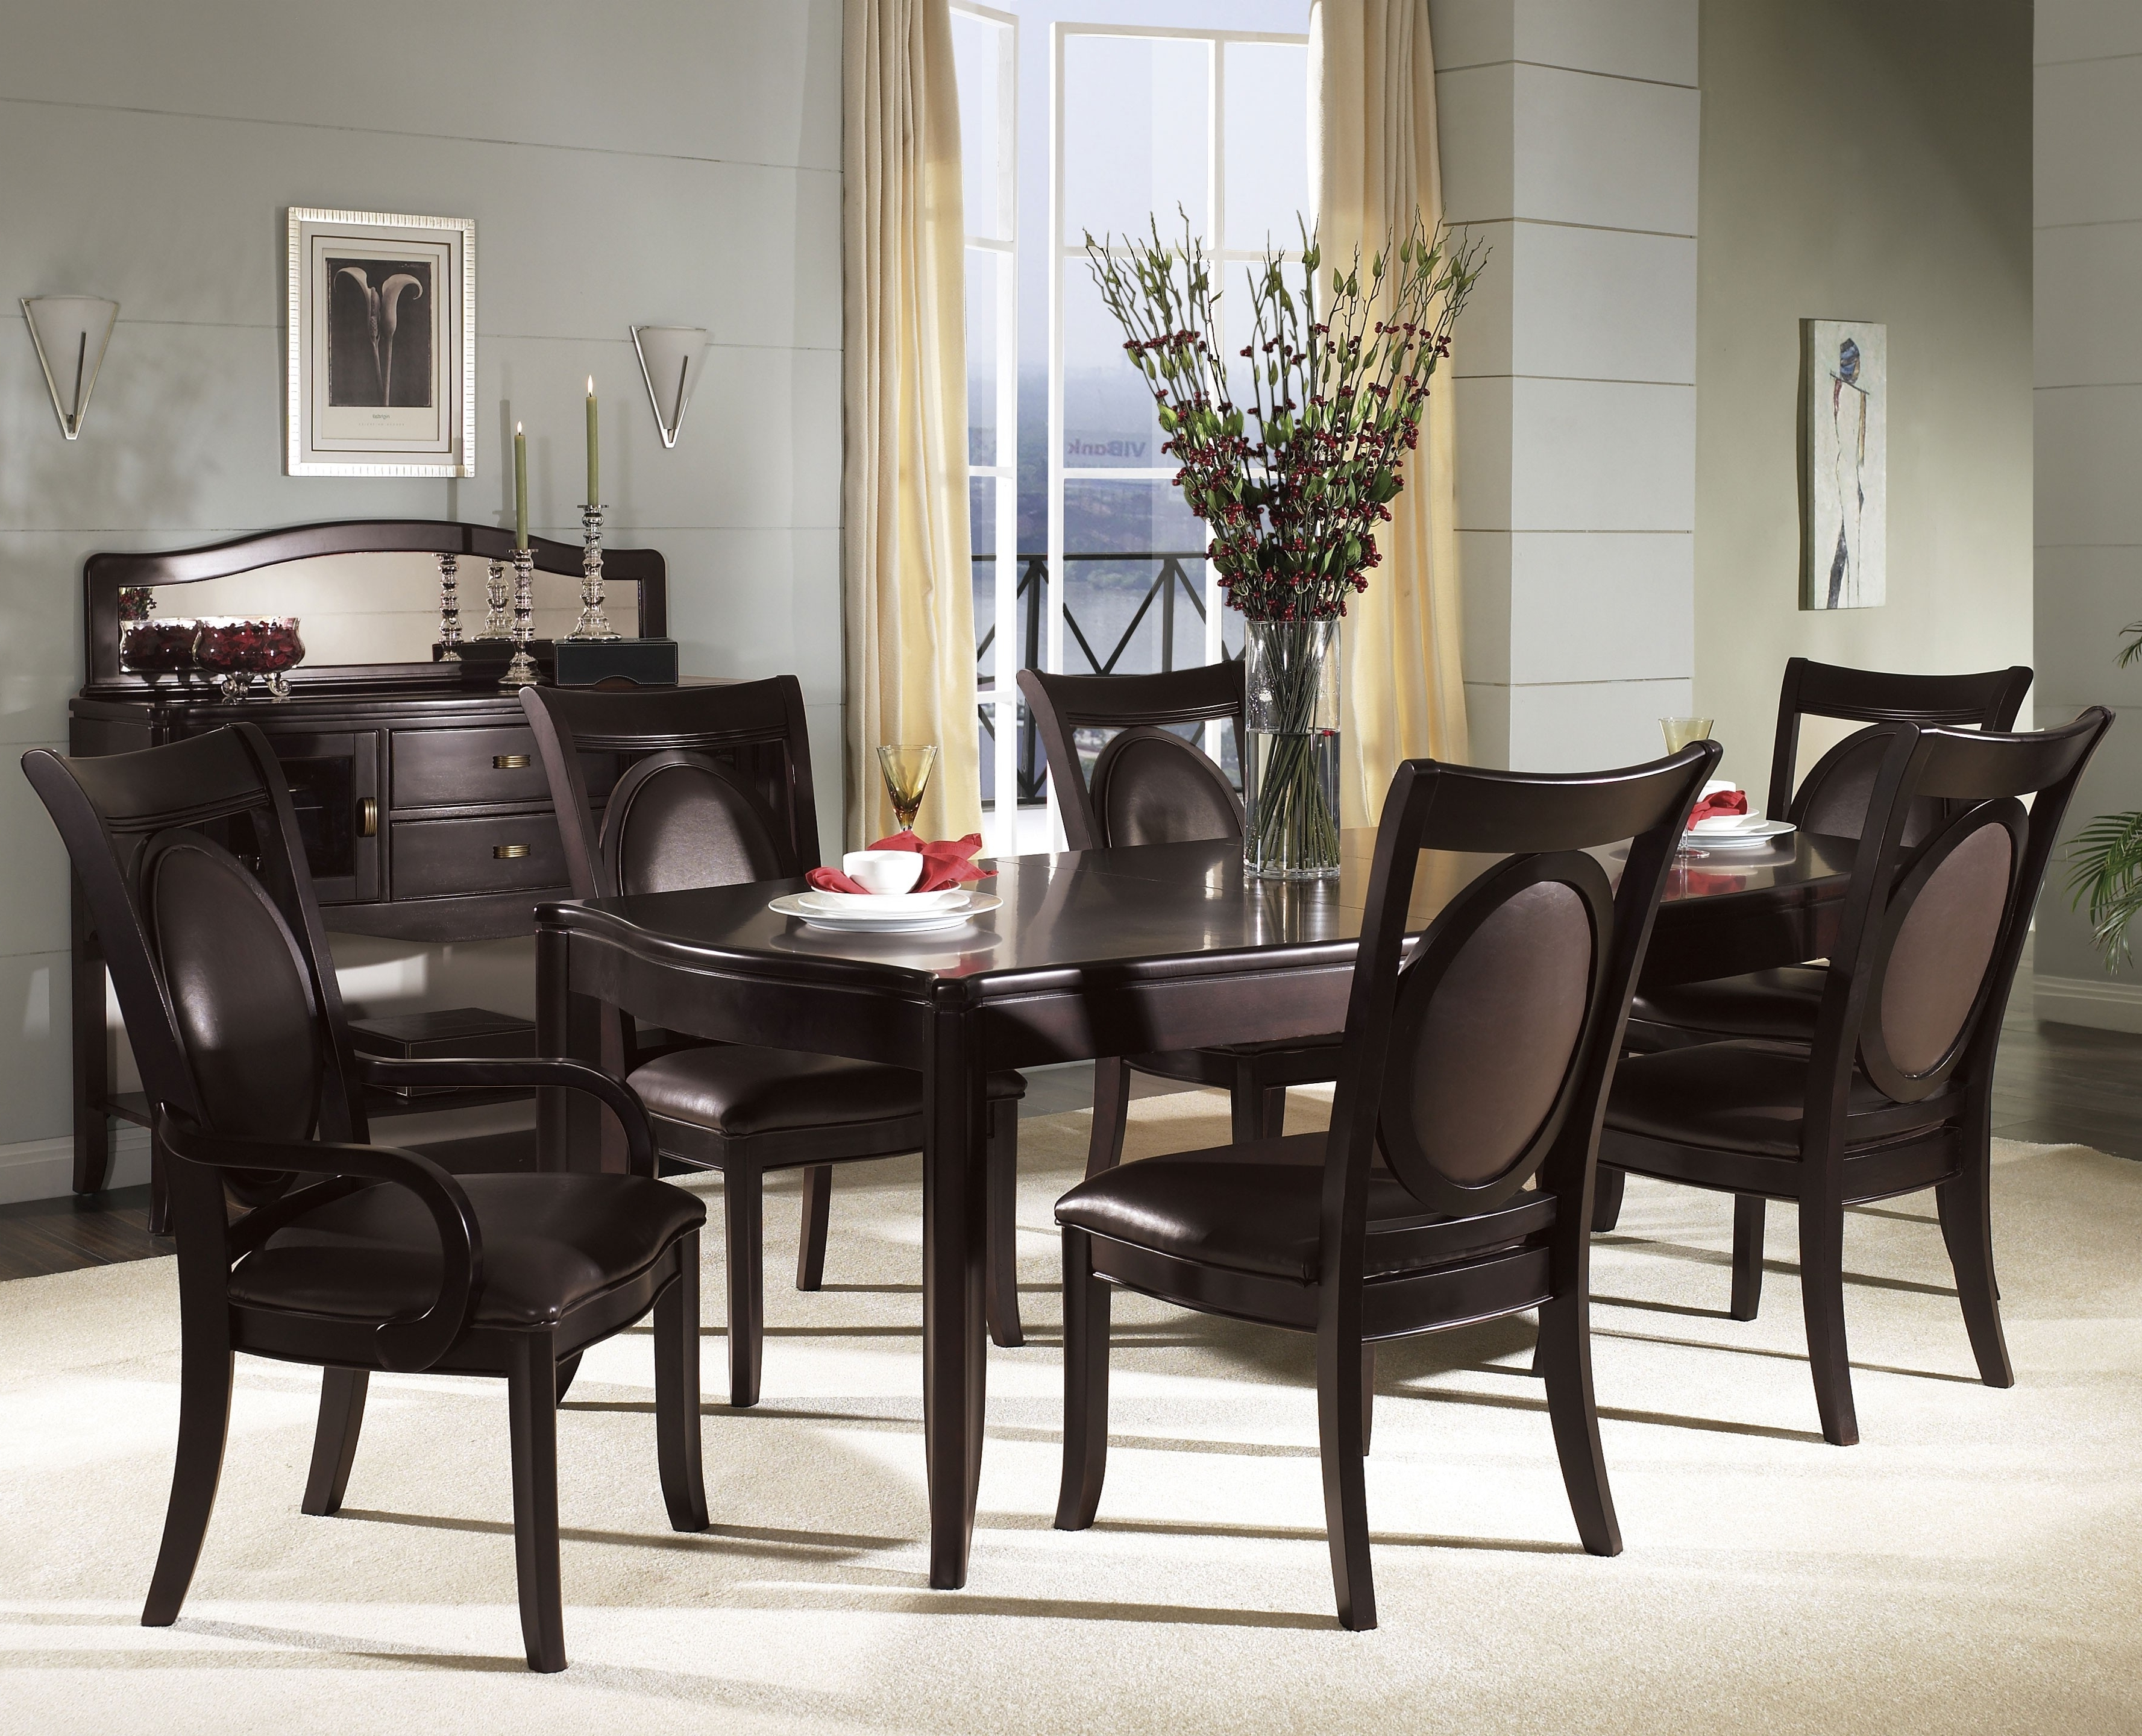 Dining Table And 8 Chairs For Sale Elegant Excellent Elegant Dining In Newest Dining Tables And 8 Chairs For Sale (Gallery 21 of 25)